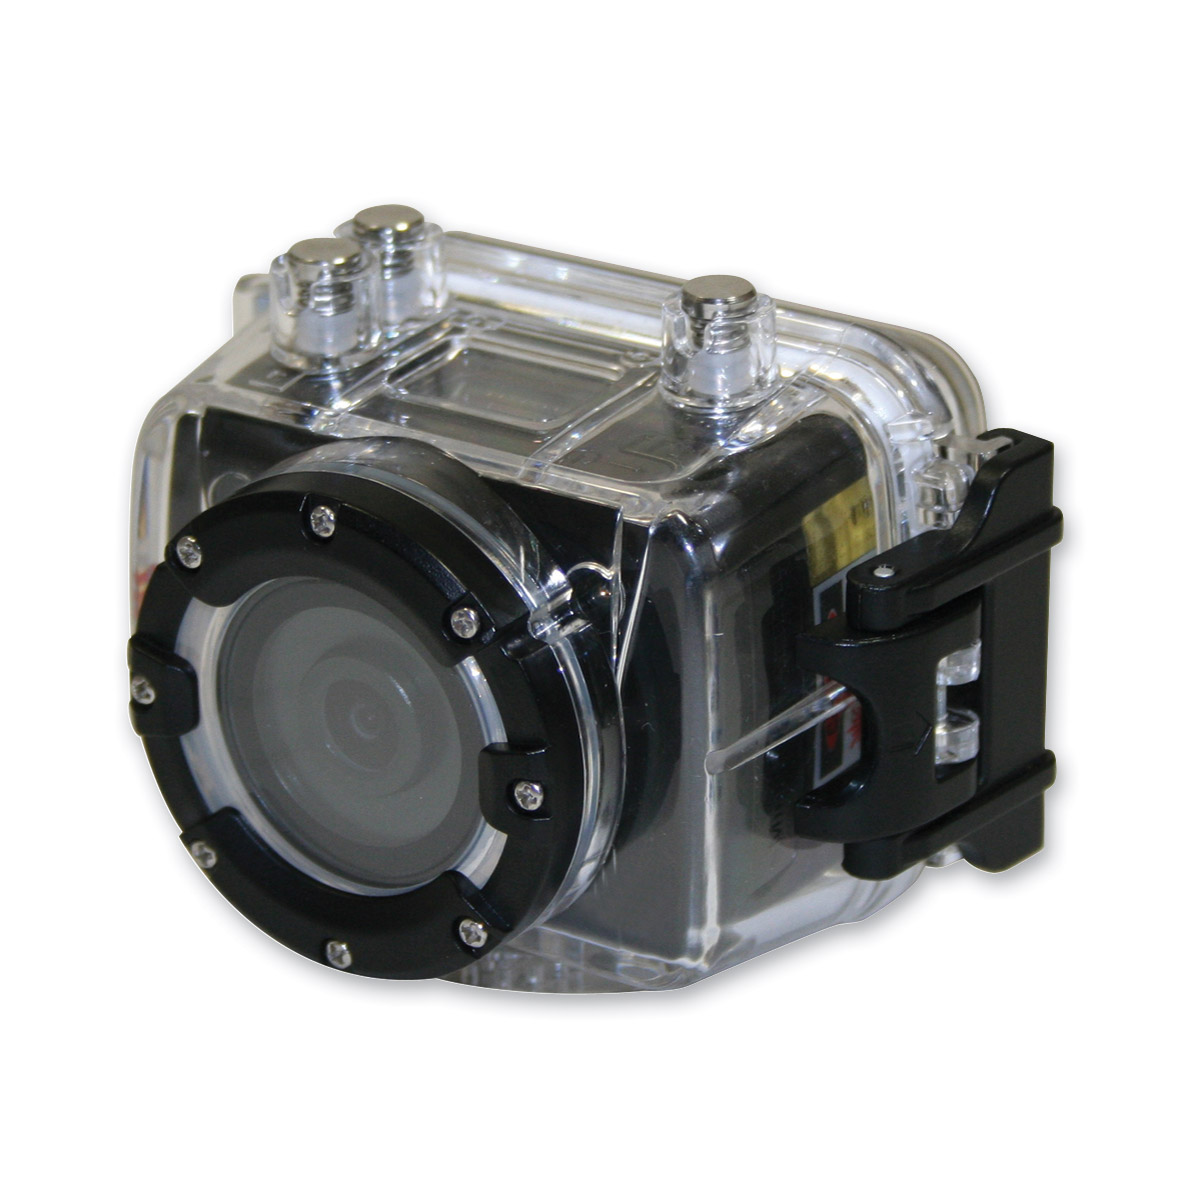 RP Tronix Primo XtremeHD Sports Camera